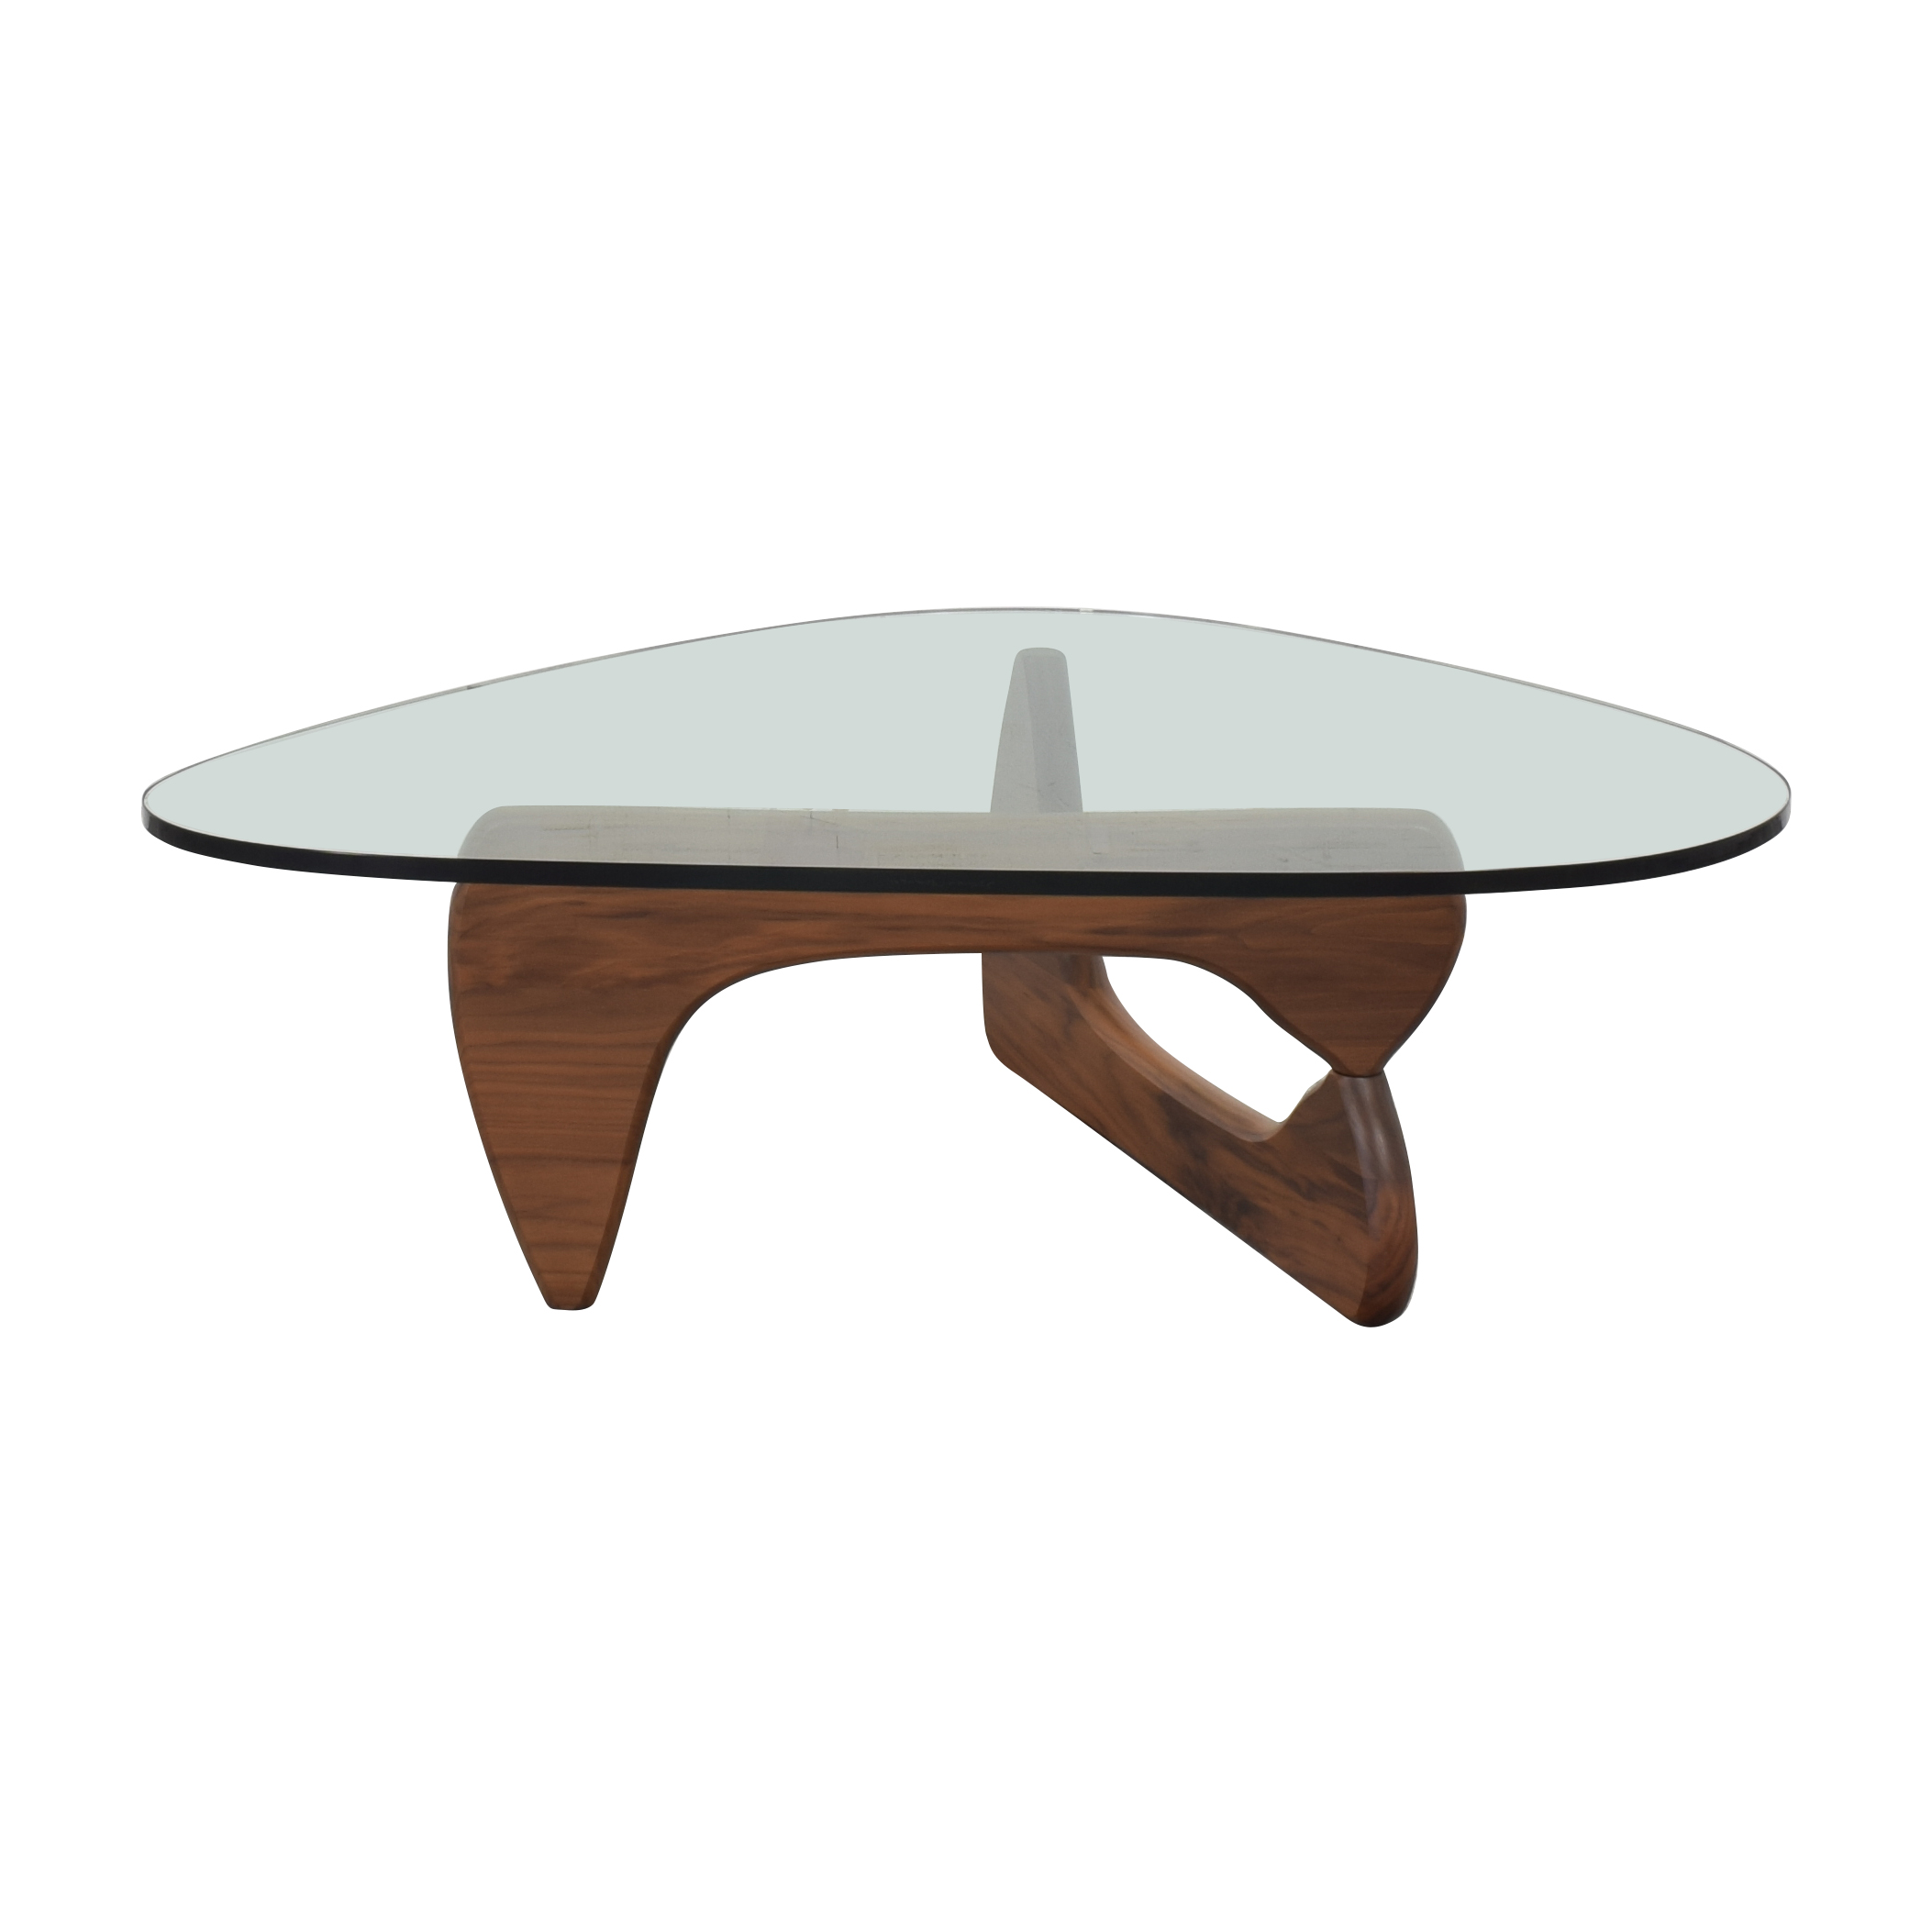 Herman Miller Noguchi Coffee Table / Tables